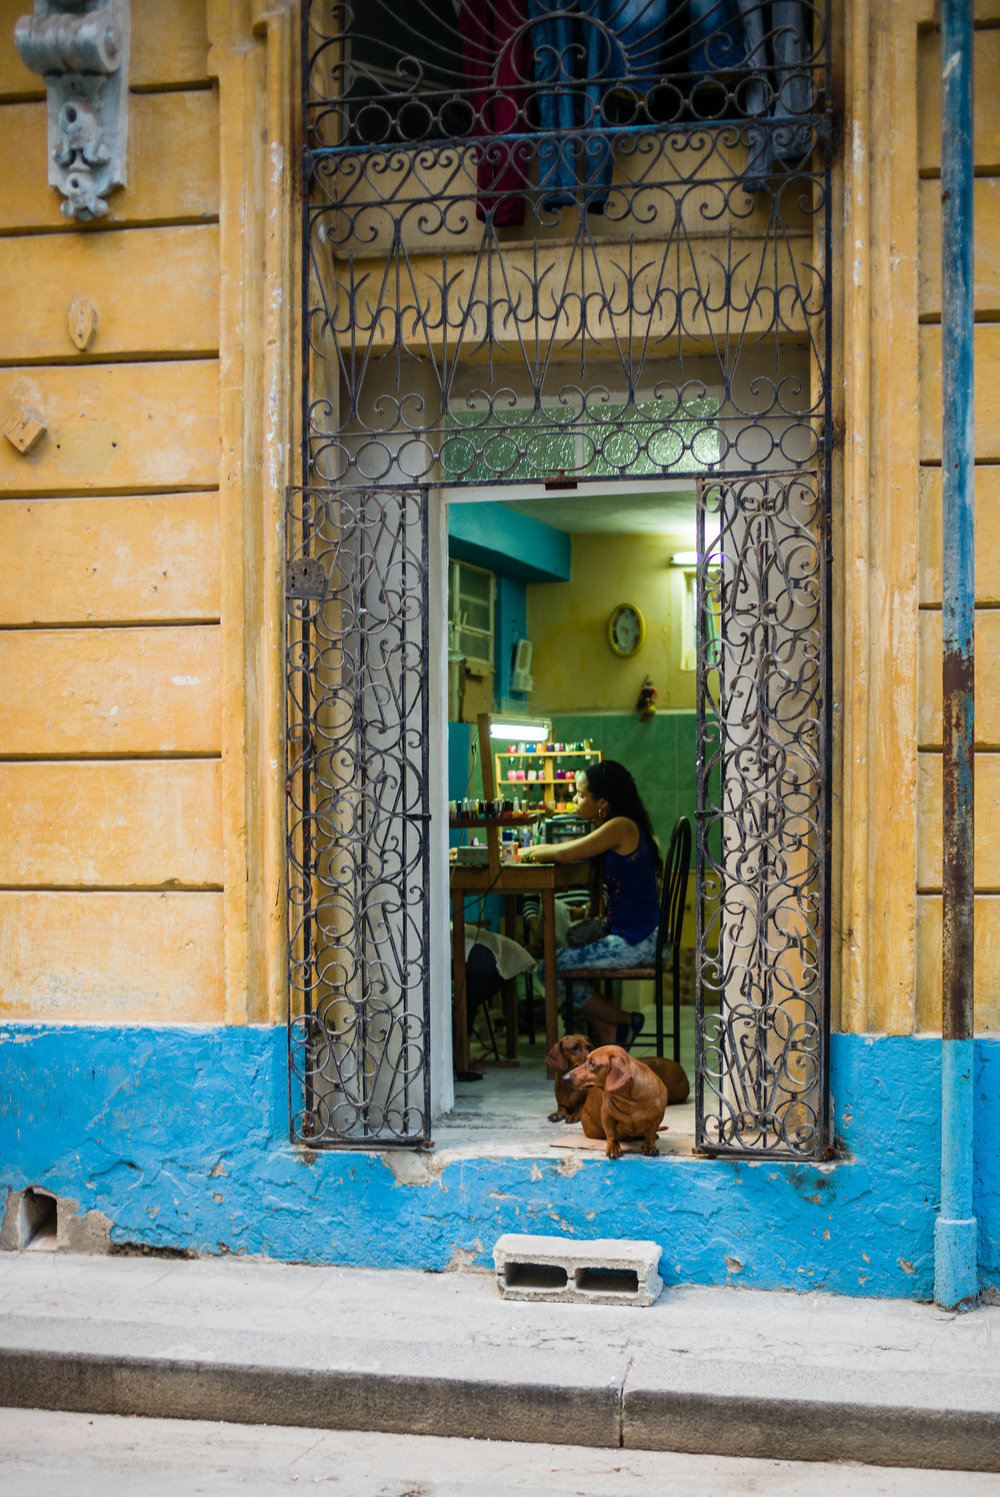 Photo: Cuba / Alamy Stock Photo